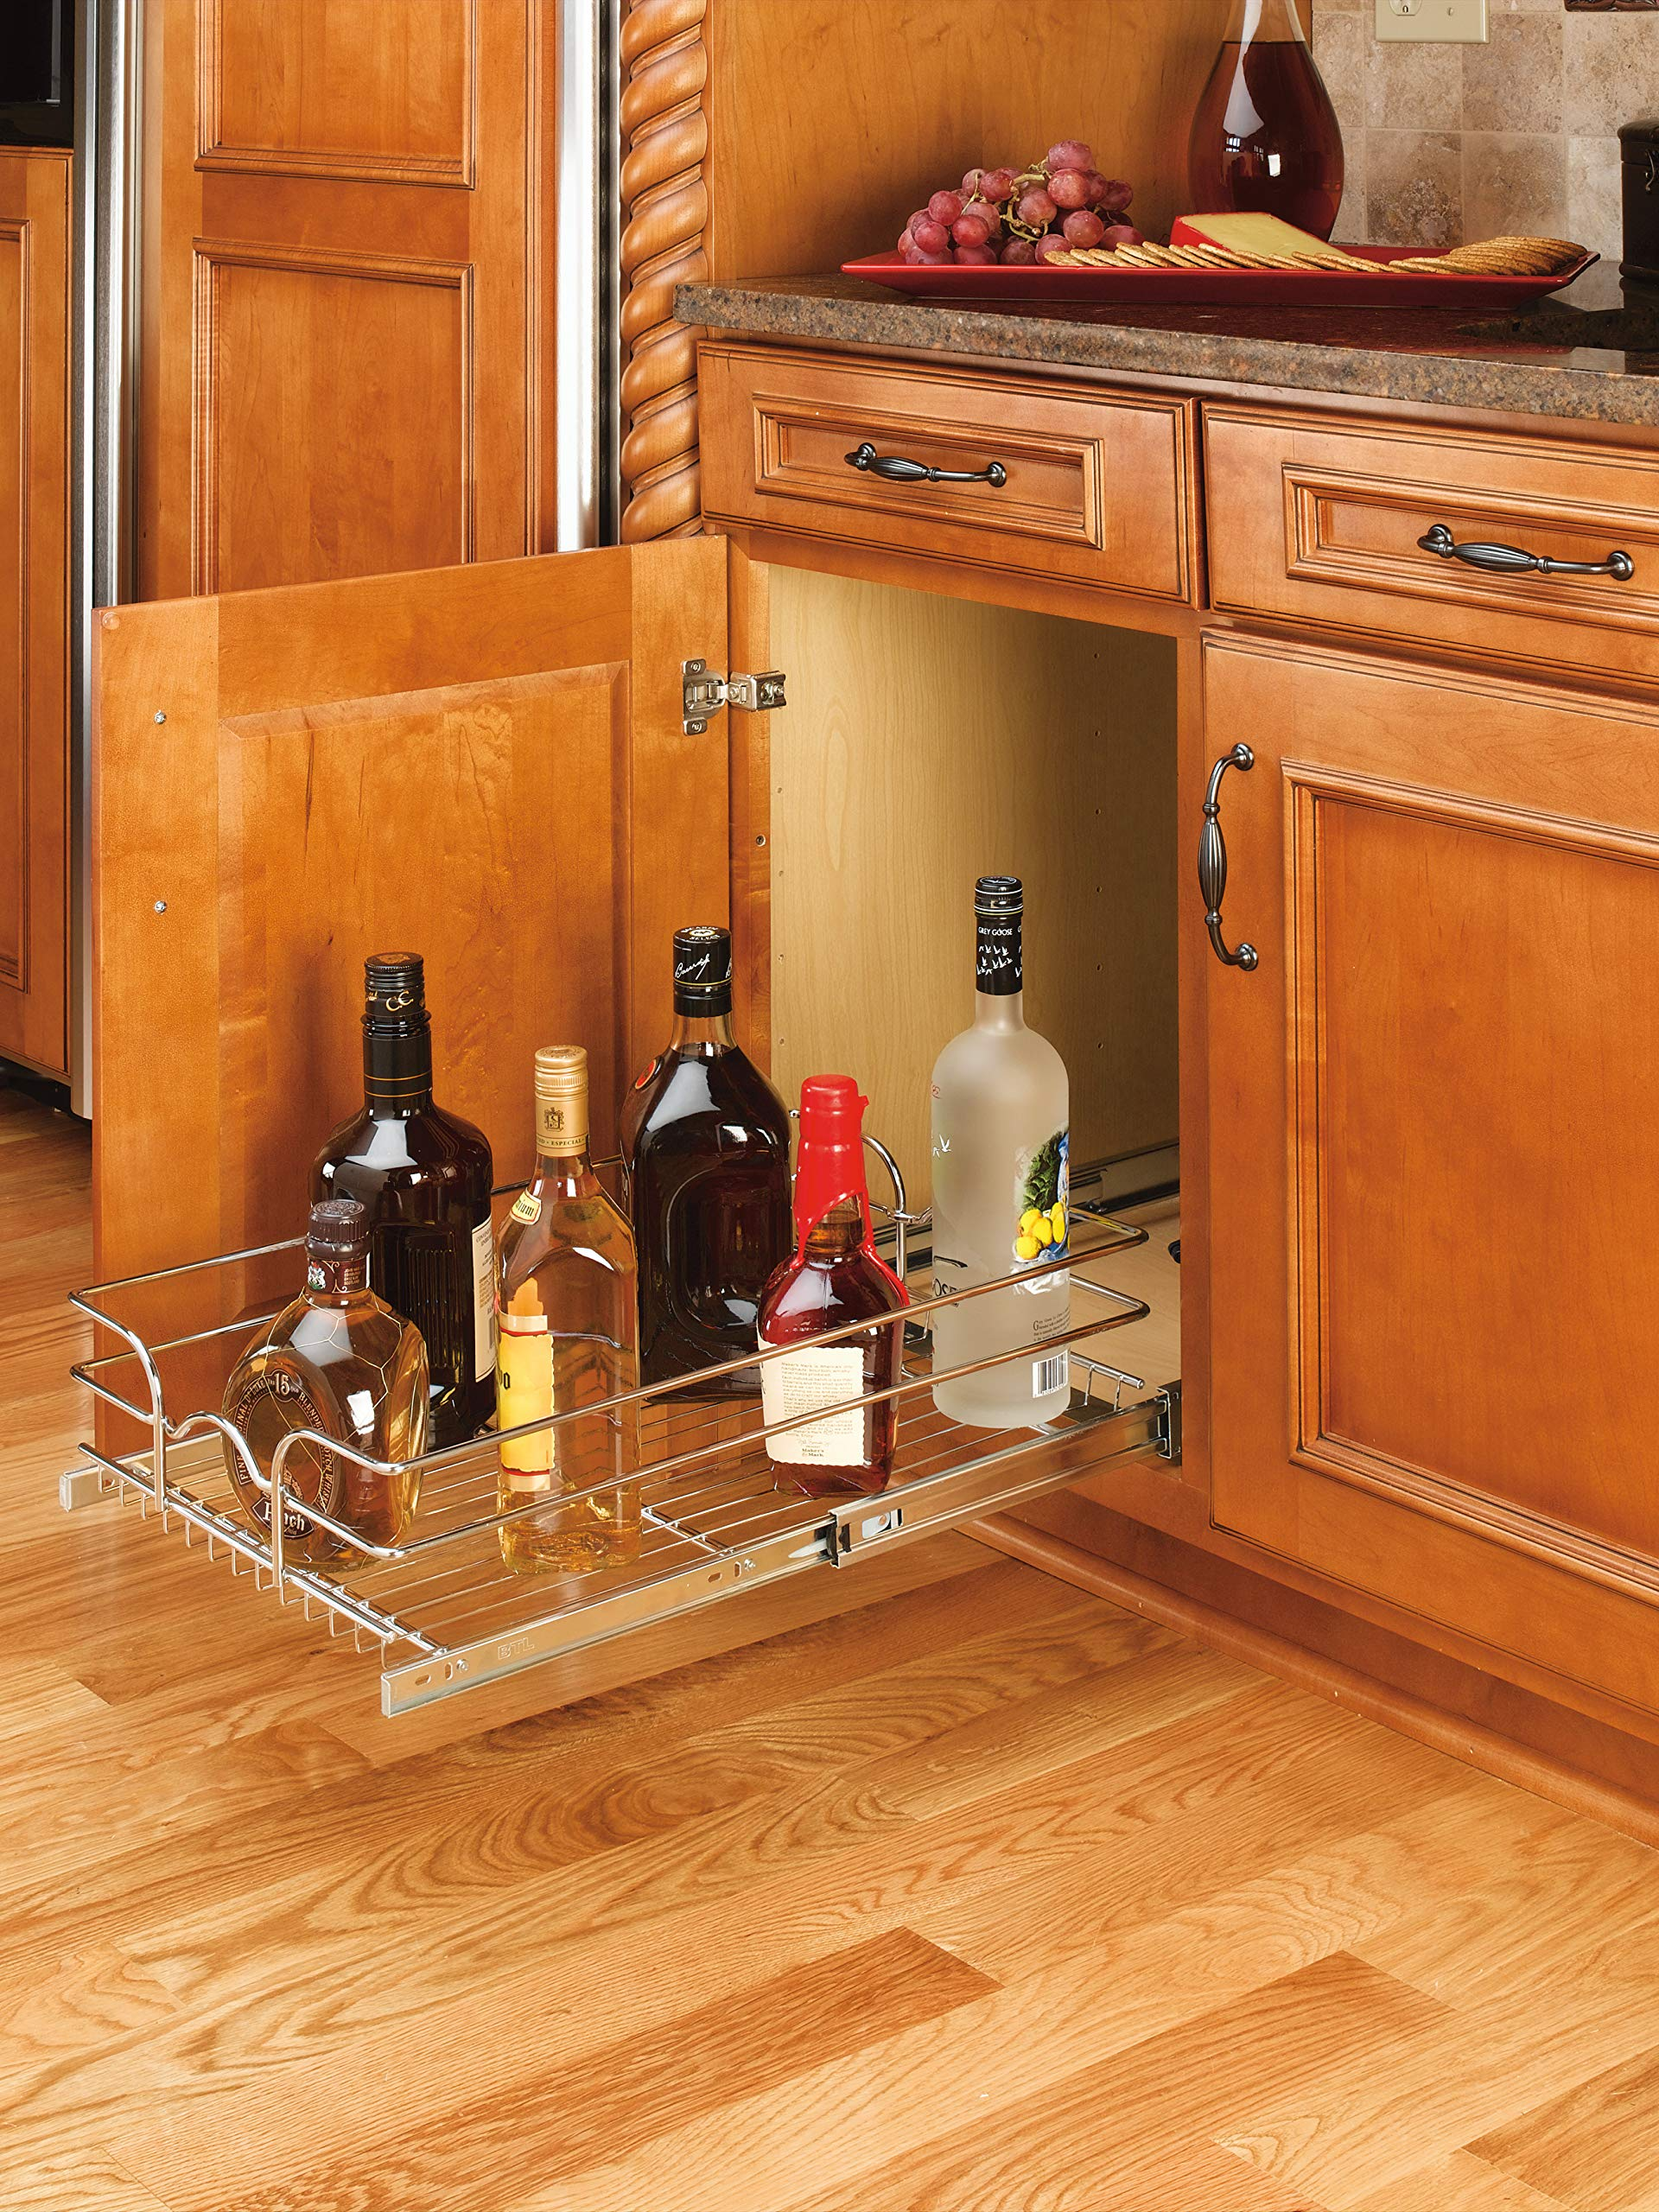 Rev-A-Shelf - 5WB1-2122-CR - 21 in. W x 22 in. D Base Cabinet Pull-Out Chrome Wire Basket by Rev-A-Shelf (Image #4)